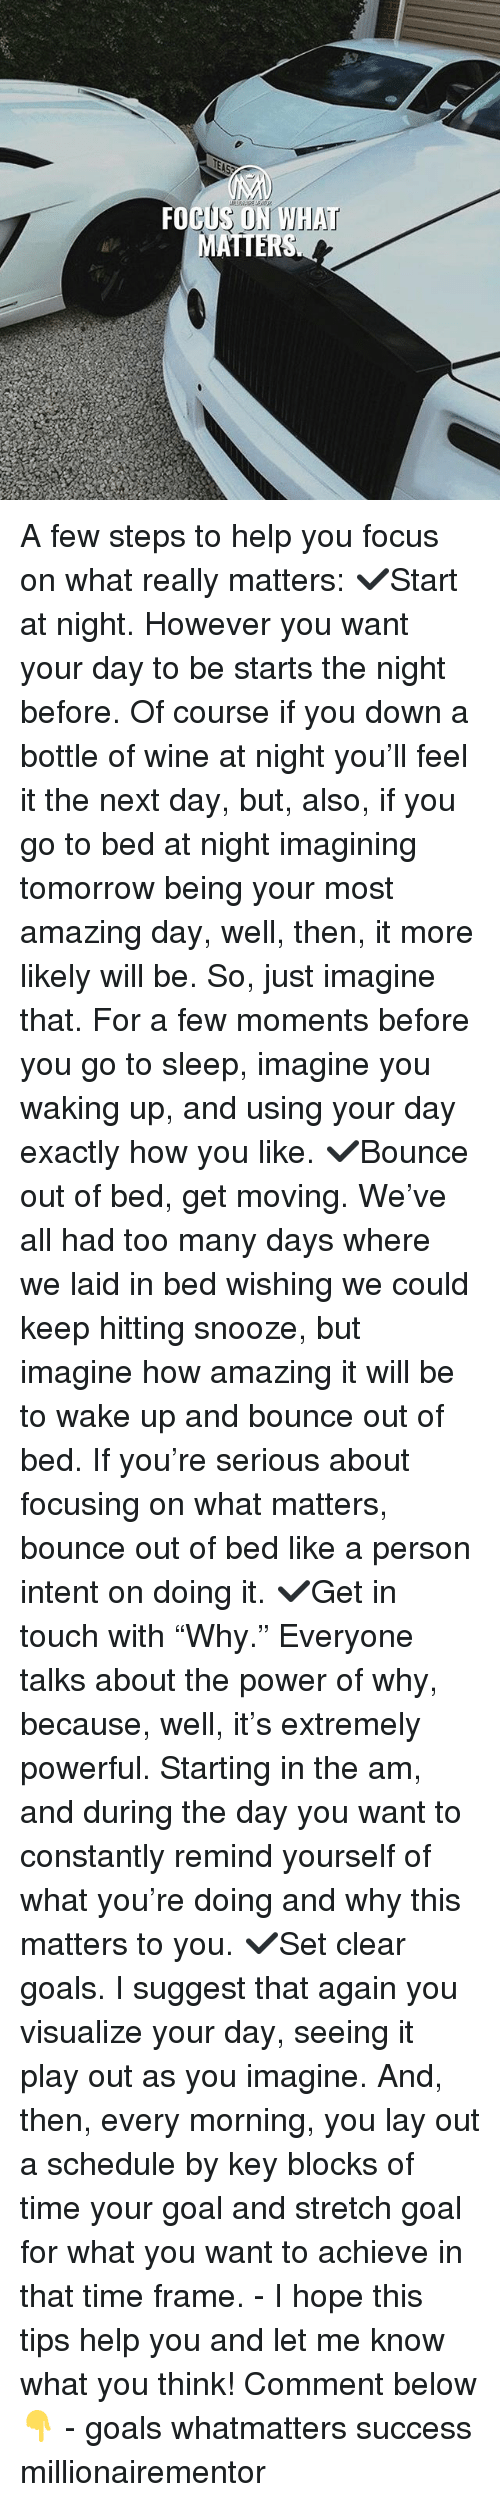 """Go to Sleep, Goals, and Memes: MATTERS A few steps to help you focus on what really matters: ✔️Start at night. However you want your day to be starts the night before. Of course if you down a bottle of wine at night you'll feel it the next day, but, also, if you go to bed at night imagining tomorrow being your most amazing day, well, then, it more likely will be. So, just imagine that. For a few moments before you go to sleep, imagine you waking up, and using your day exactly how you like. ✔️Bounce out of bed, get moving. We've all had too many days where we laid in bed wishing we could keep hitting snooze, but imagine how amazing it will be to wake up and bounce out of bed. If you're serious about focusing on what matters, bounce out of bed like a person intent on doing it. ✔️Get in touch with """"Why."""" Everyone talks about the power of why, because, well, it's extremely powerful. Starting in the am, and during the day you want to constantly remind yourself of what you're doing and why this matters to you. ✔️Set clear goals. I suggest that again you visualize your day, seeing it play out as you imagine. And, then, every morning, you lay out a schedule by key blocks of time your goal and stretch goal for what you want to achieve in that time frame. - I hope this tips help you and let me know what you think! Comment below👇 - goals whatmatters success millionairementor"""